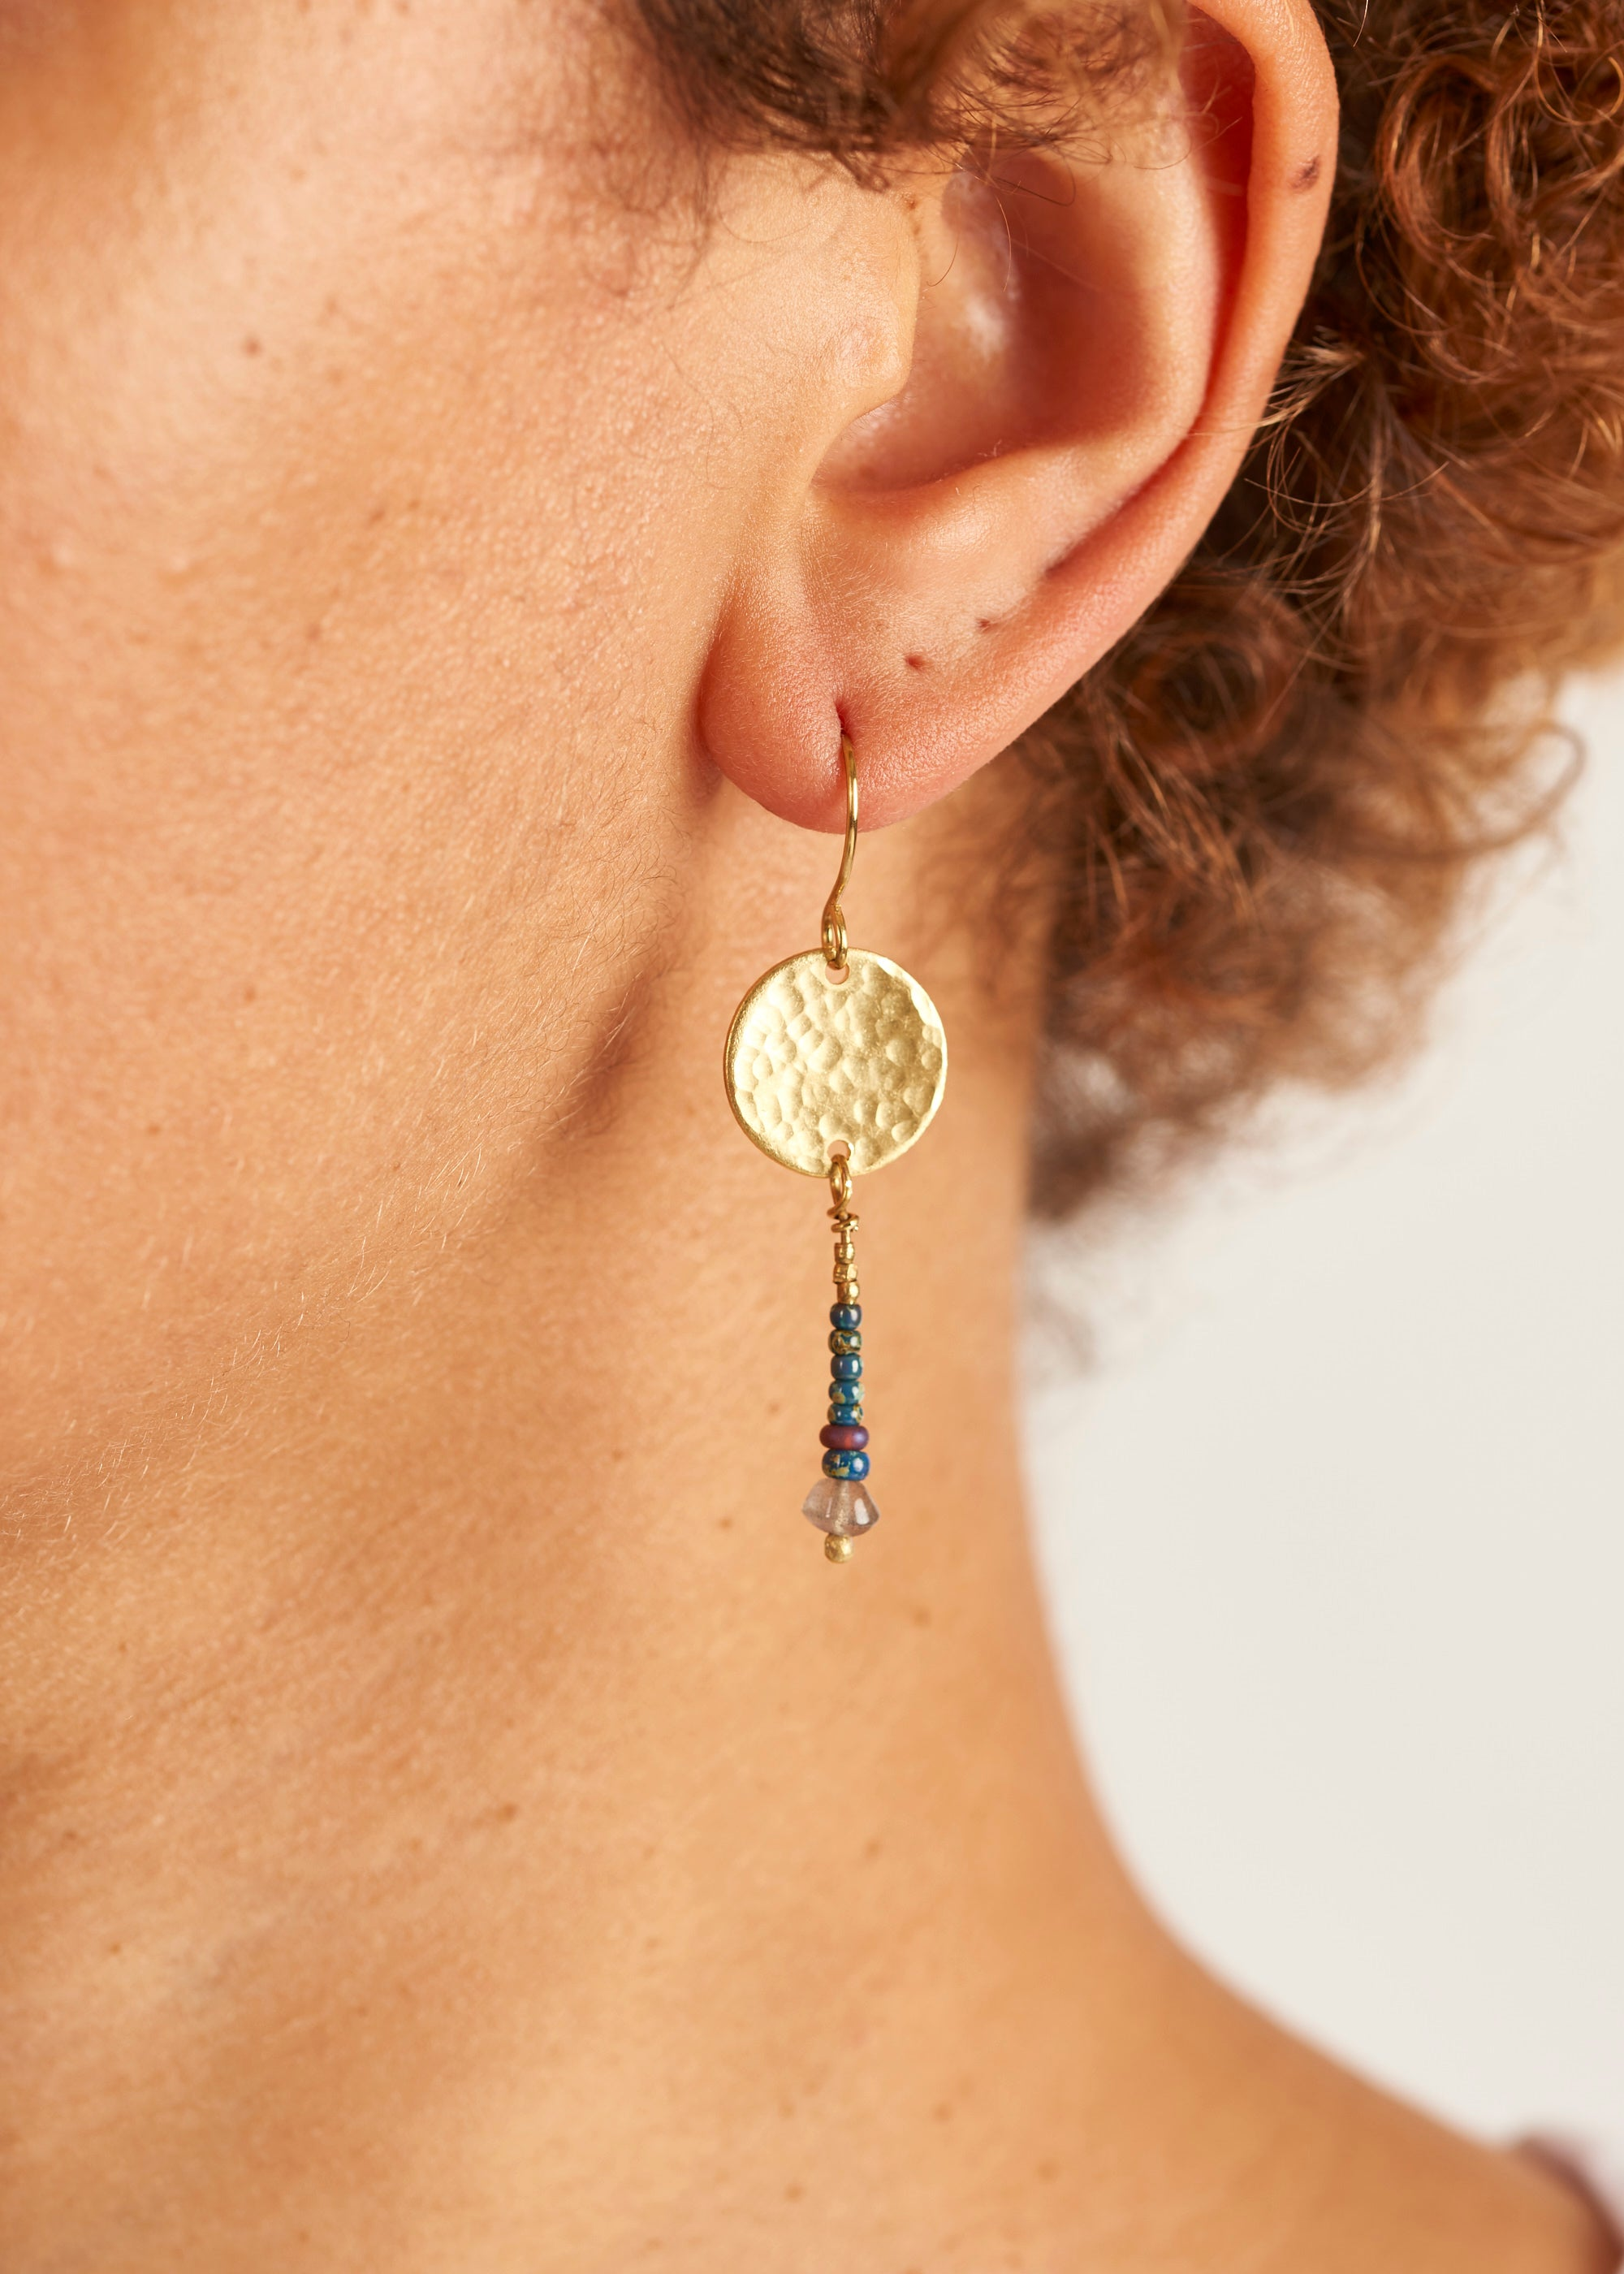 Brass Moon Earrings-Earrings-Sancho's Dress